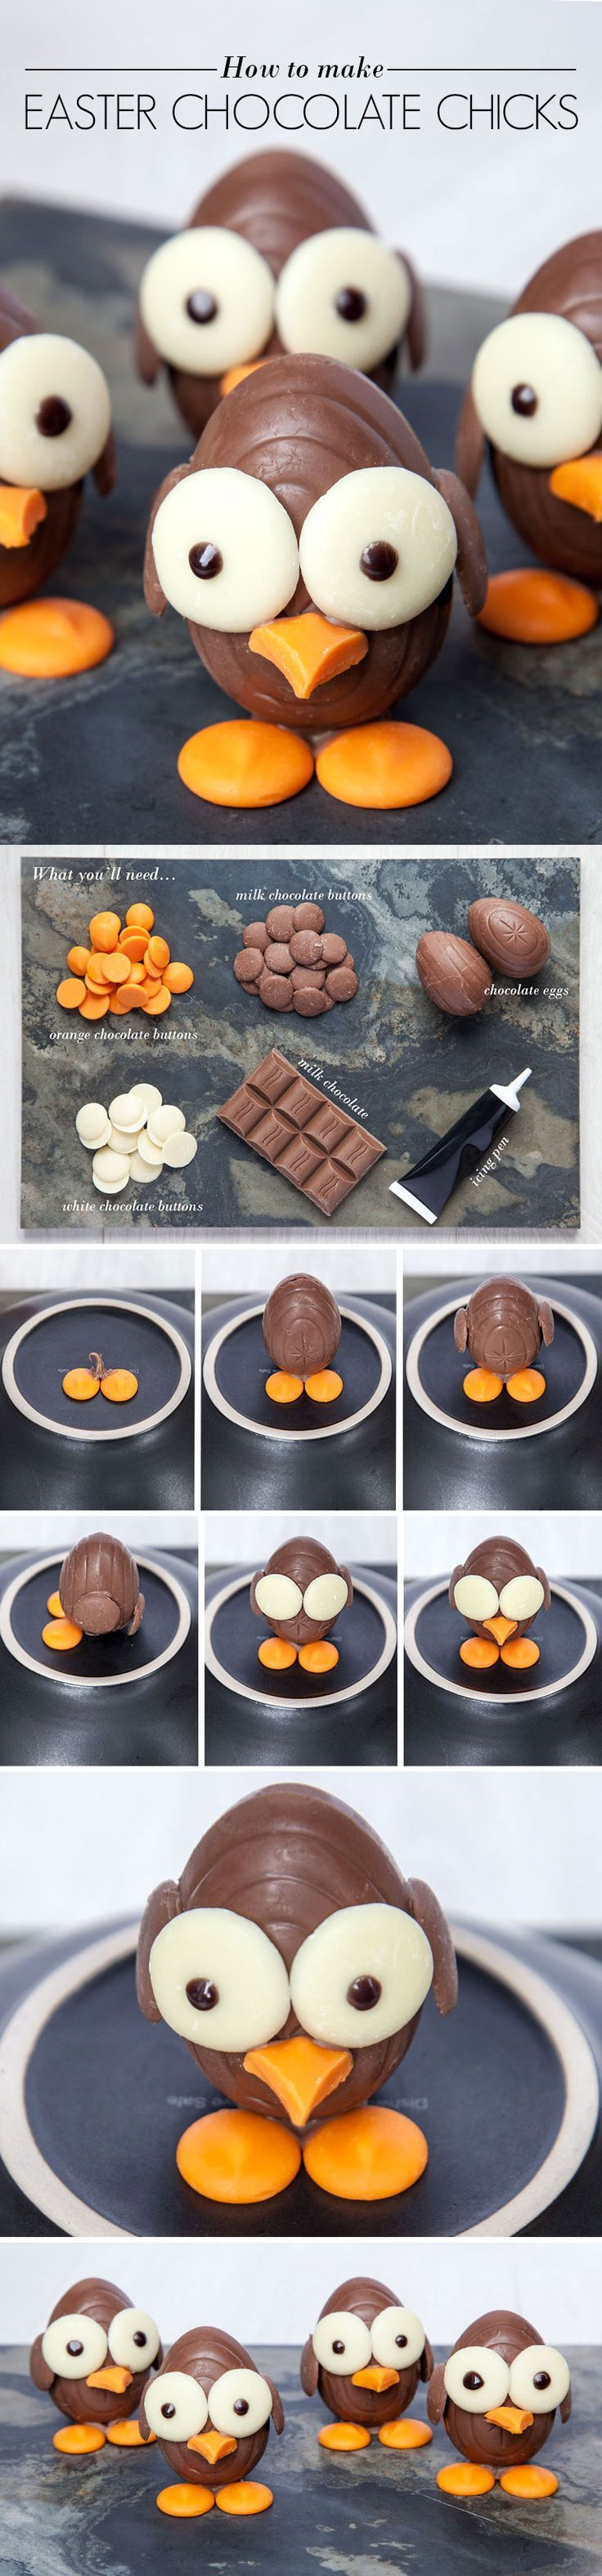 Step by Step Guide to making chocolate chicks!! (from the creator Emily Leary of http://amummytoo.co.uk)